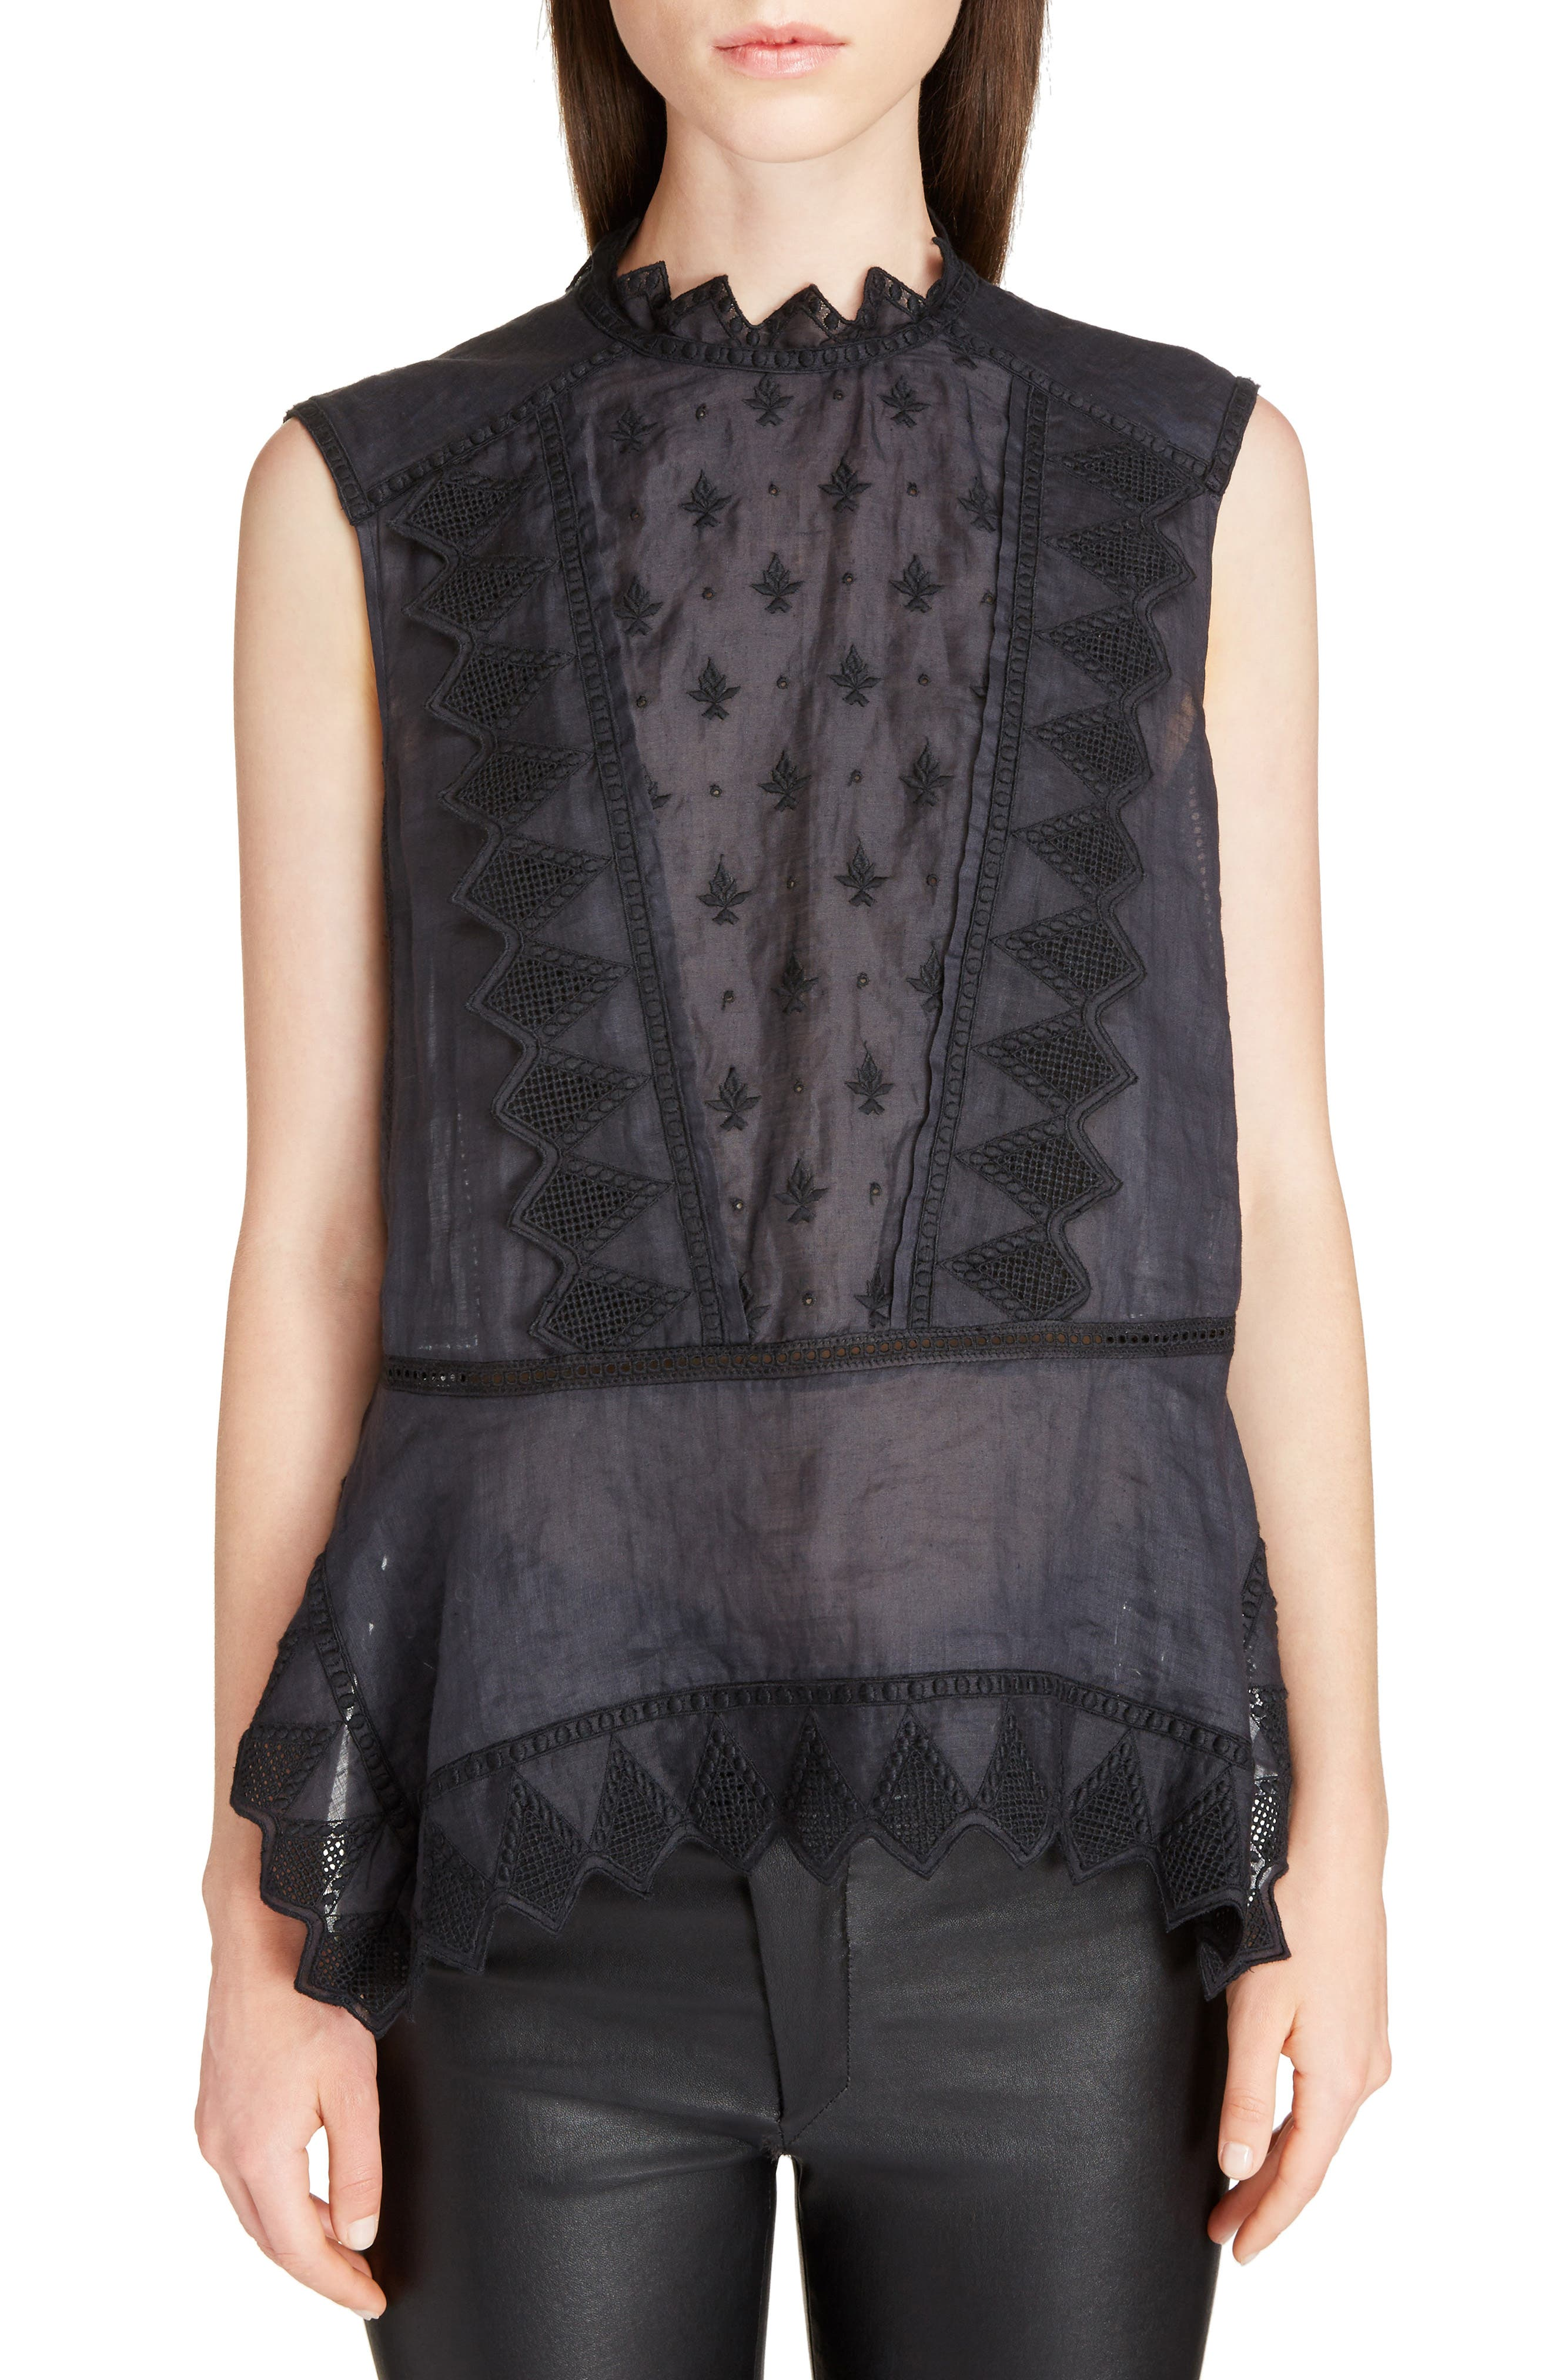 Nust Embroidered Top,                             Main thumbnail 1, color,                             001